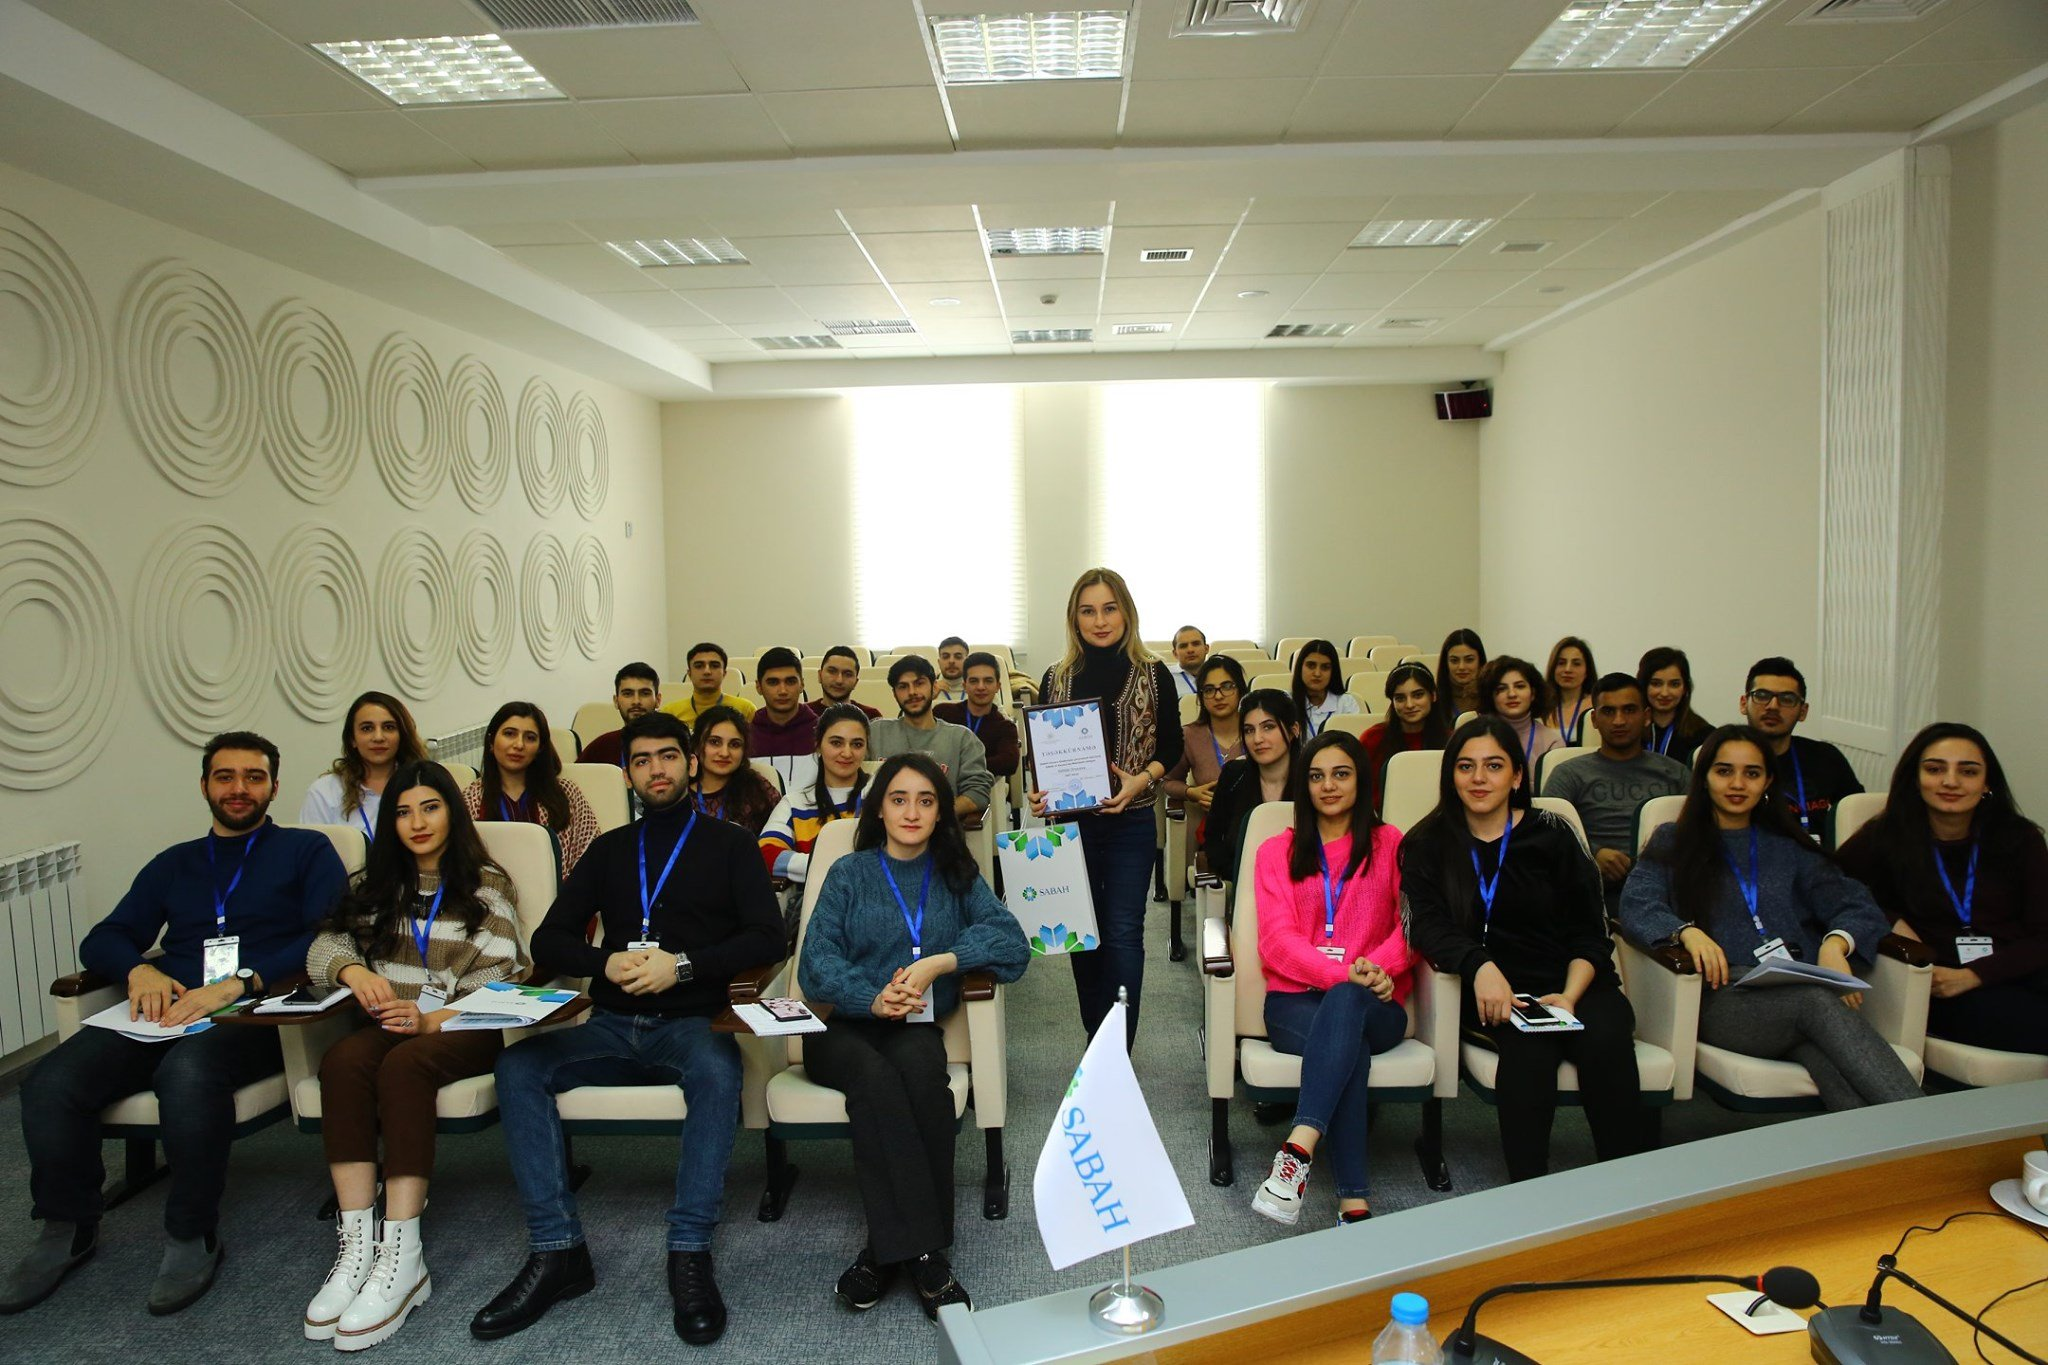 Azercell shared experience with the talented SABAH groups students